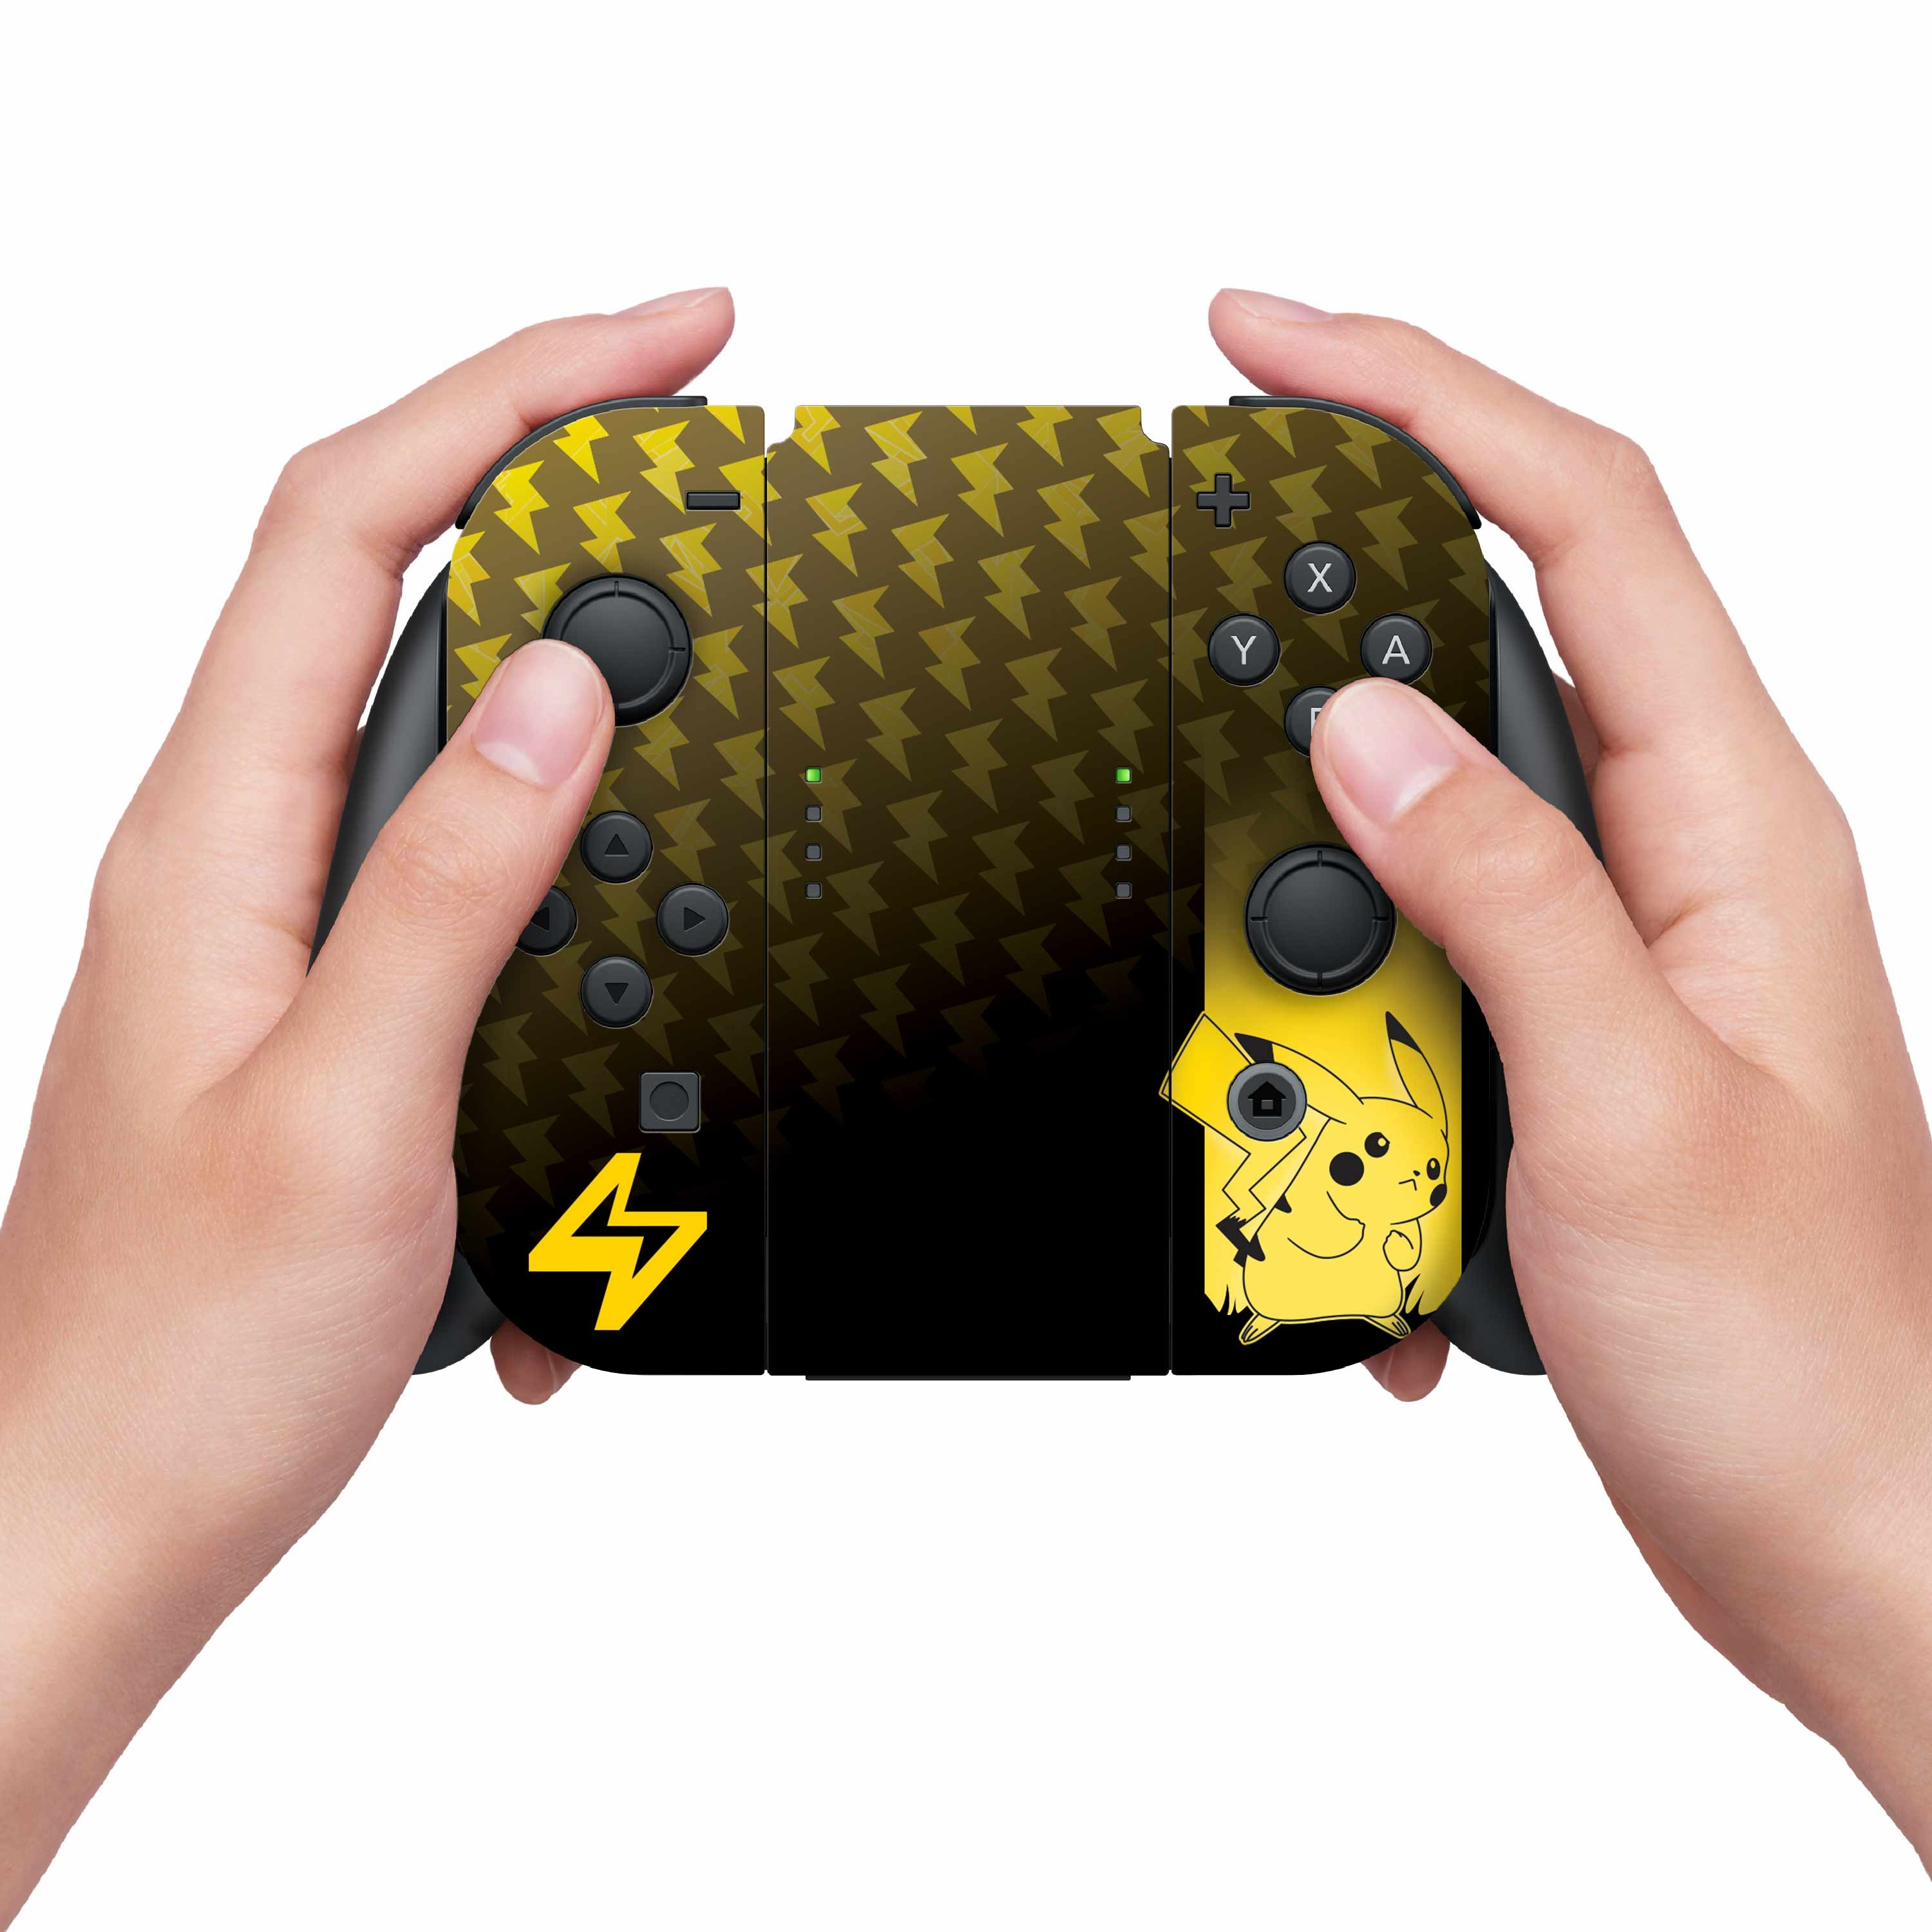 Nintendo Switch Skin & Screen Protector Set with a Pokemon Pikachu Elemental Design, Image 1